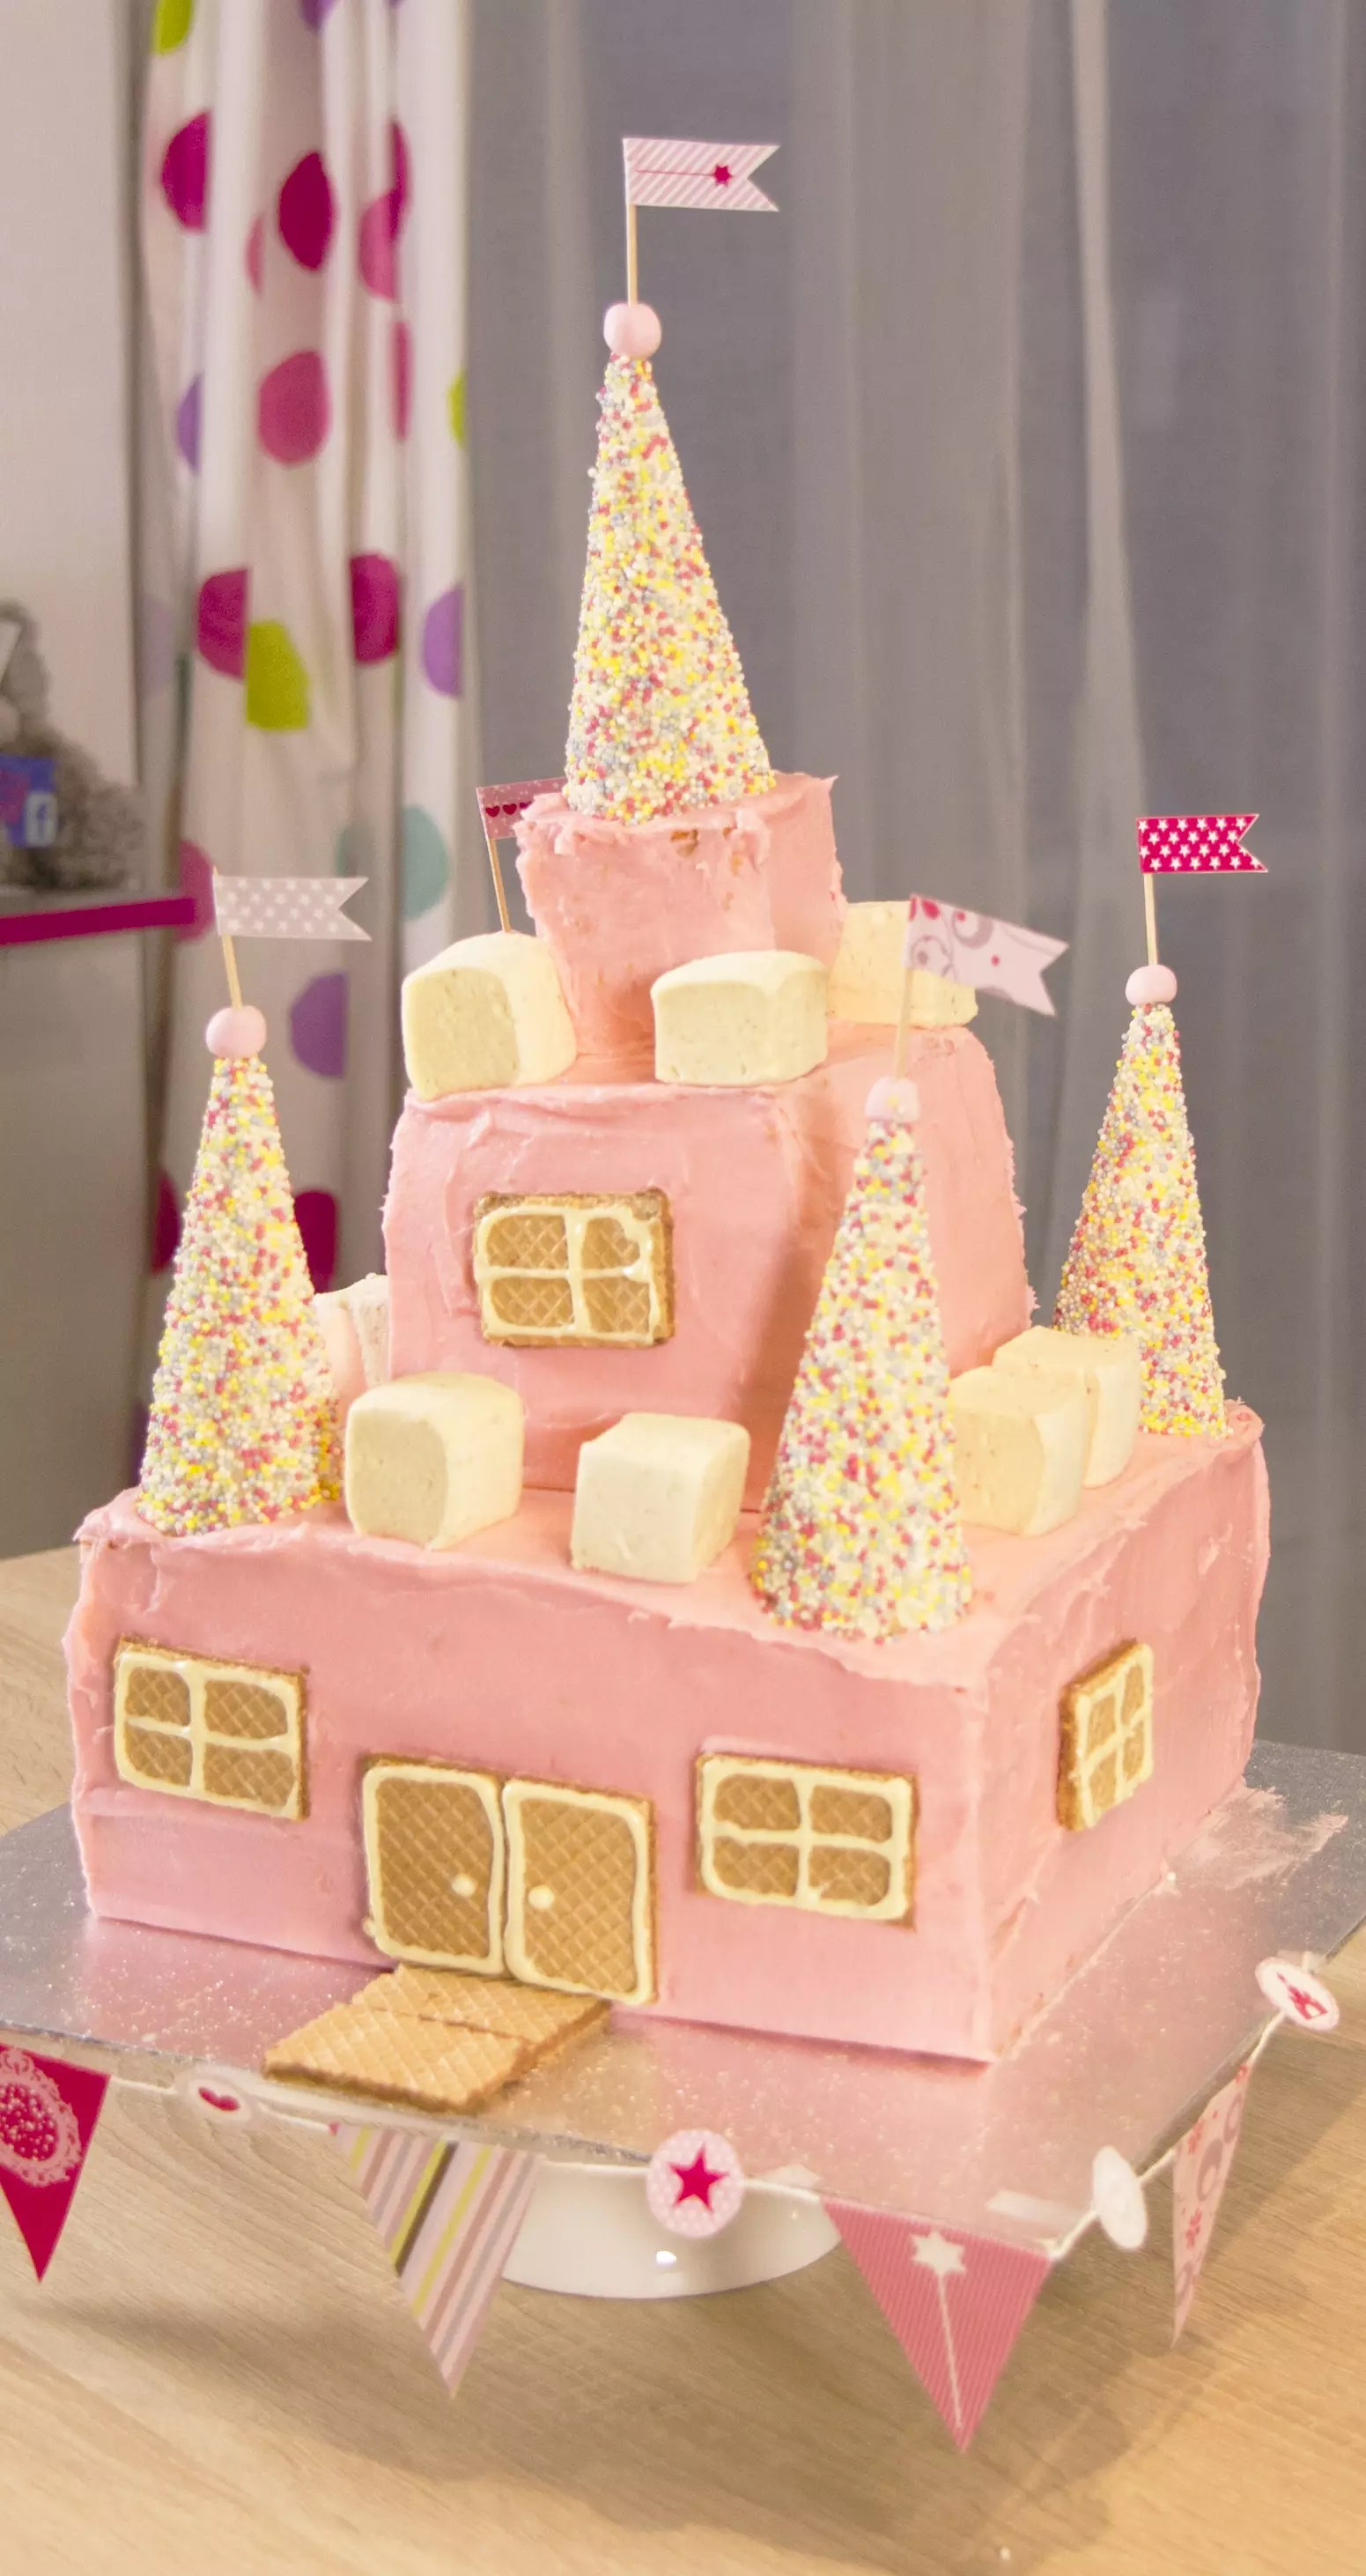 Gateau,Chateau,princesse